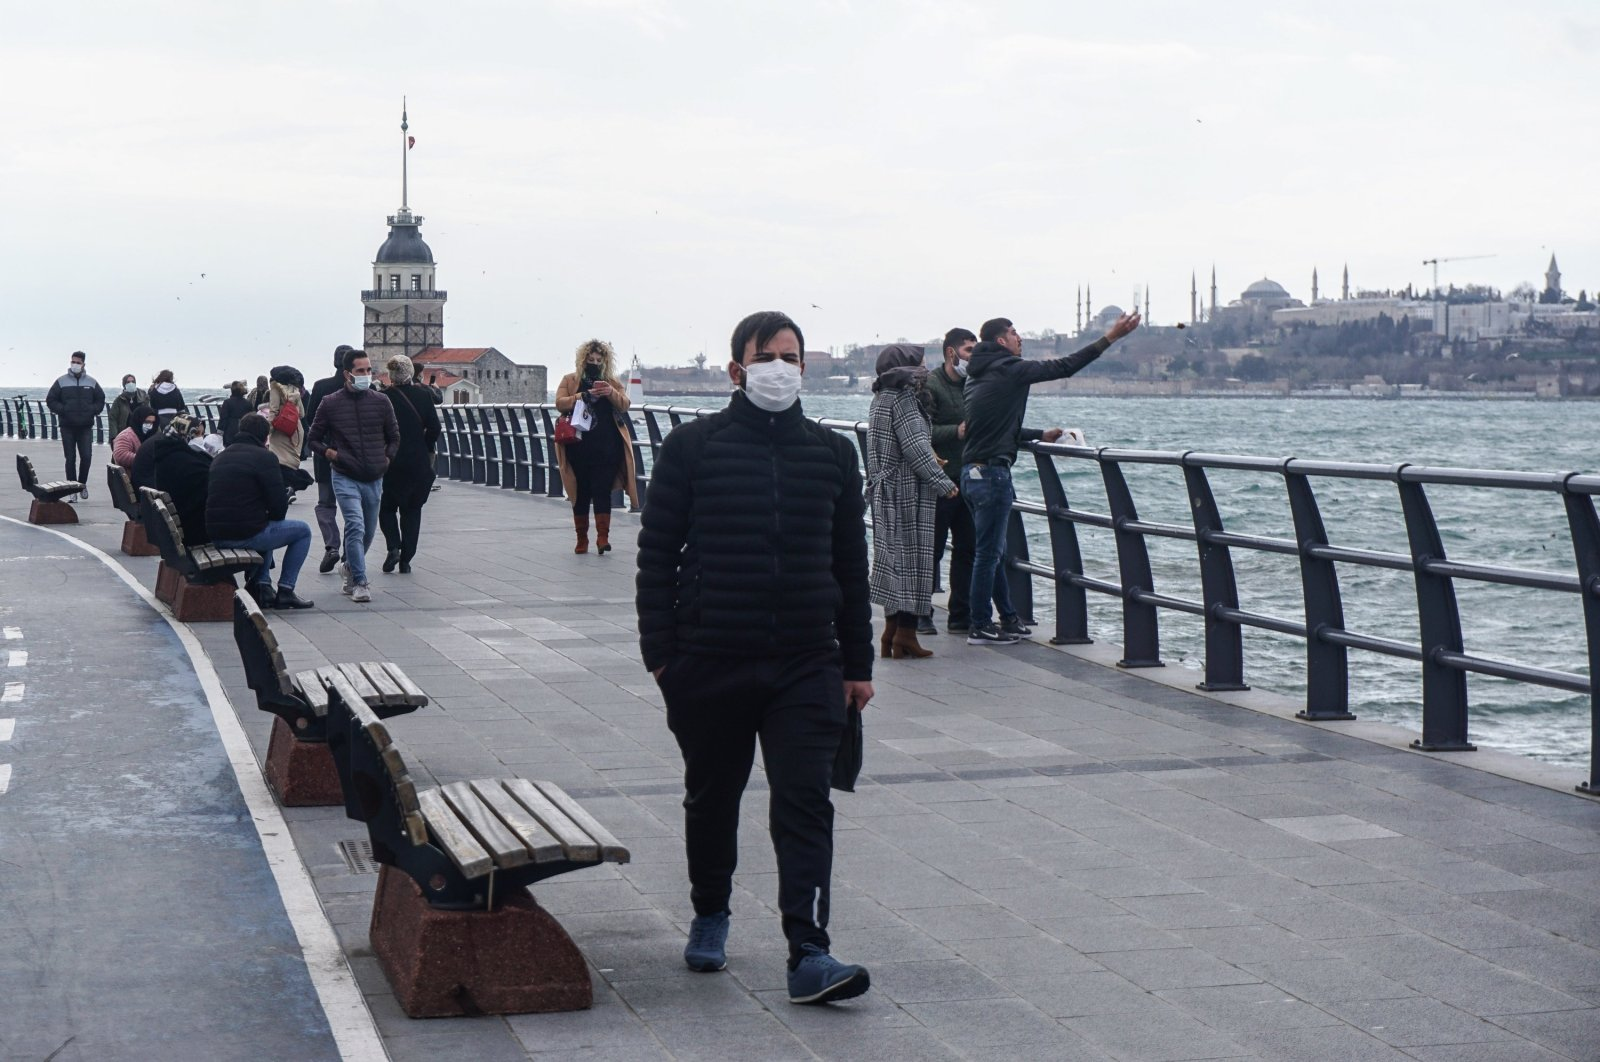 A man wearing a facemask as a precaution against the spread of COVID-19 walks by the seaside in the Üsküdar neighborhood of Istanbul, Turkey, March 16, 2021. (Reuters Photo)